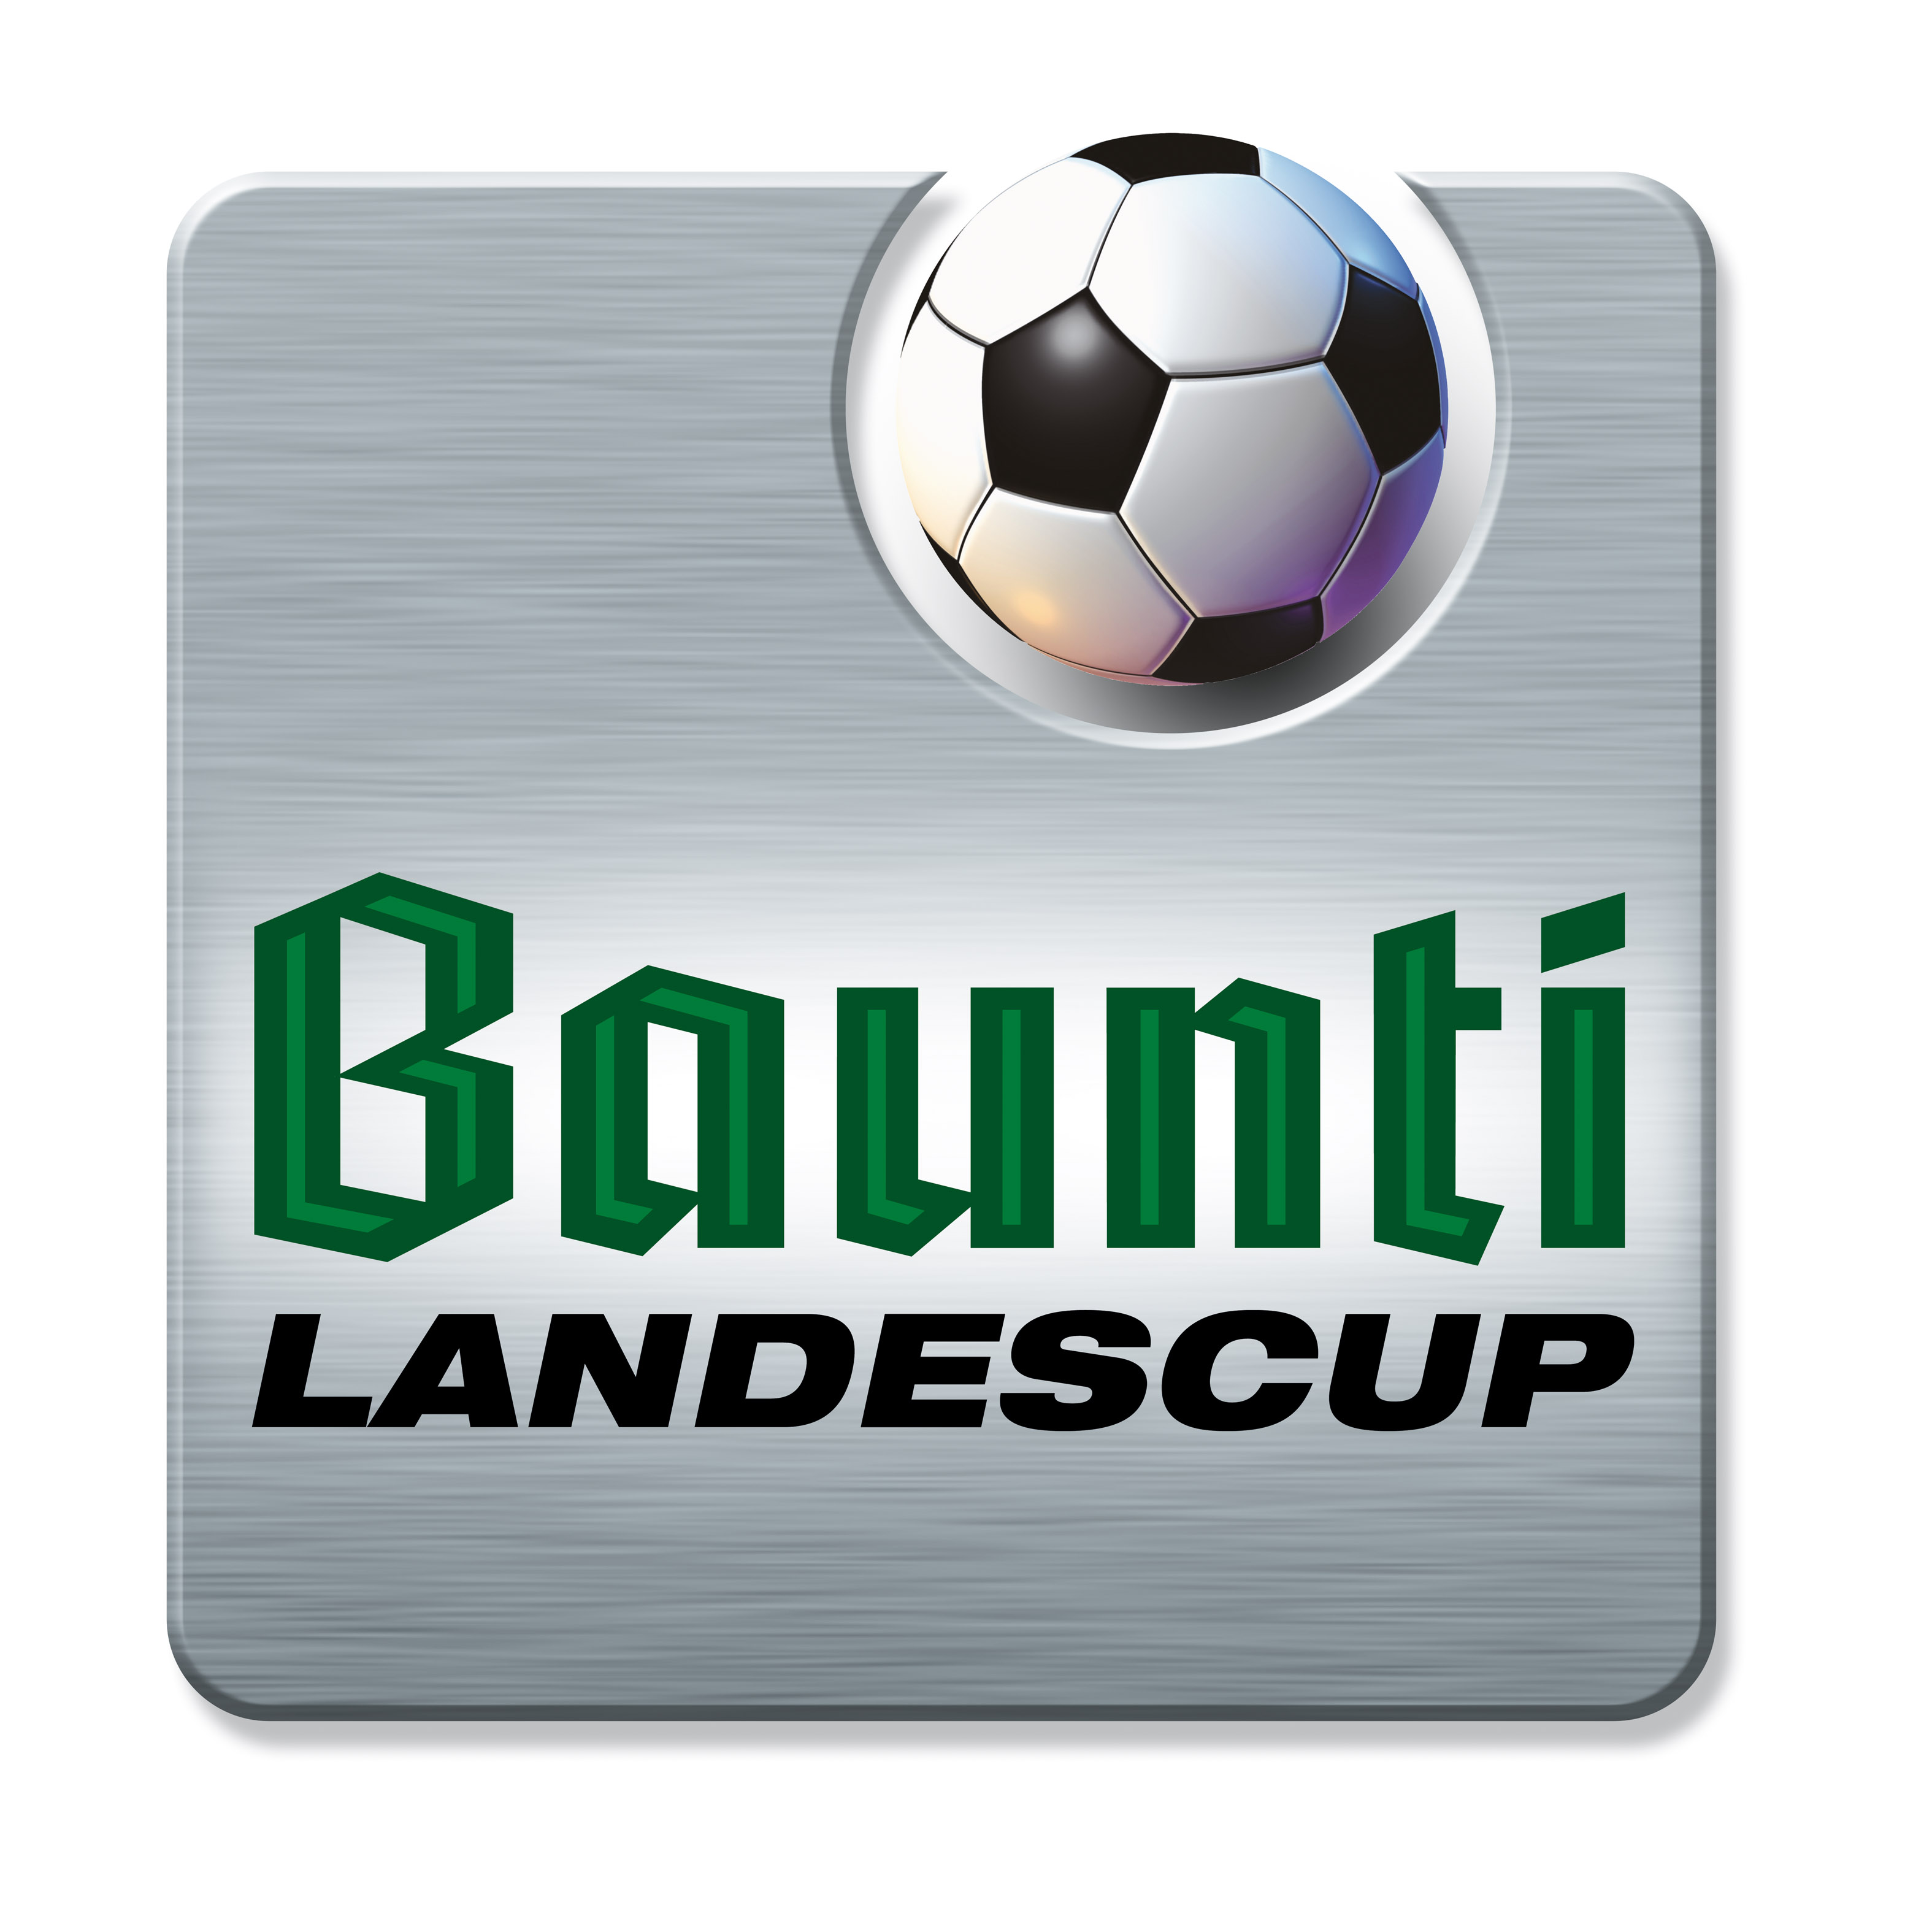 images/stories/Landescup/Baunti_Cup_Logo.jpg